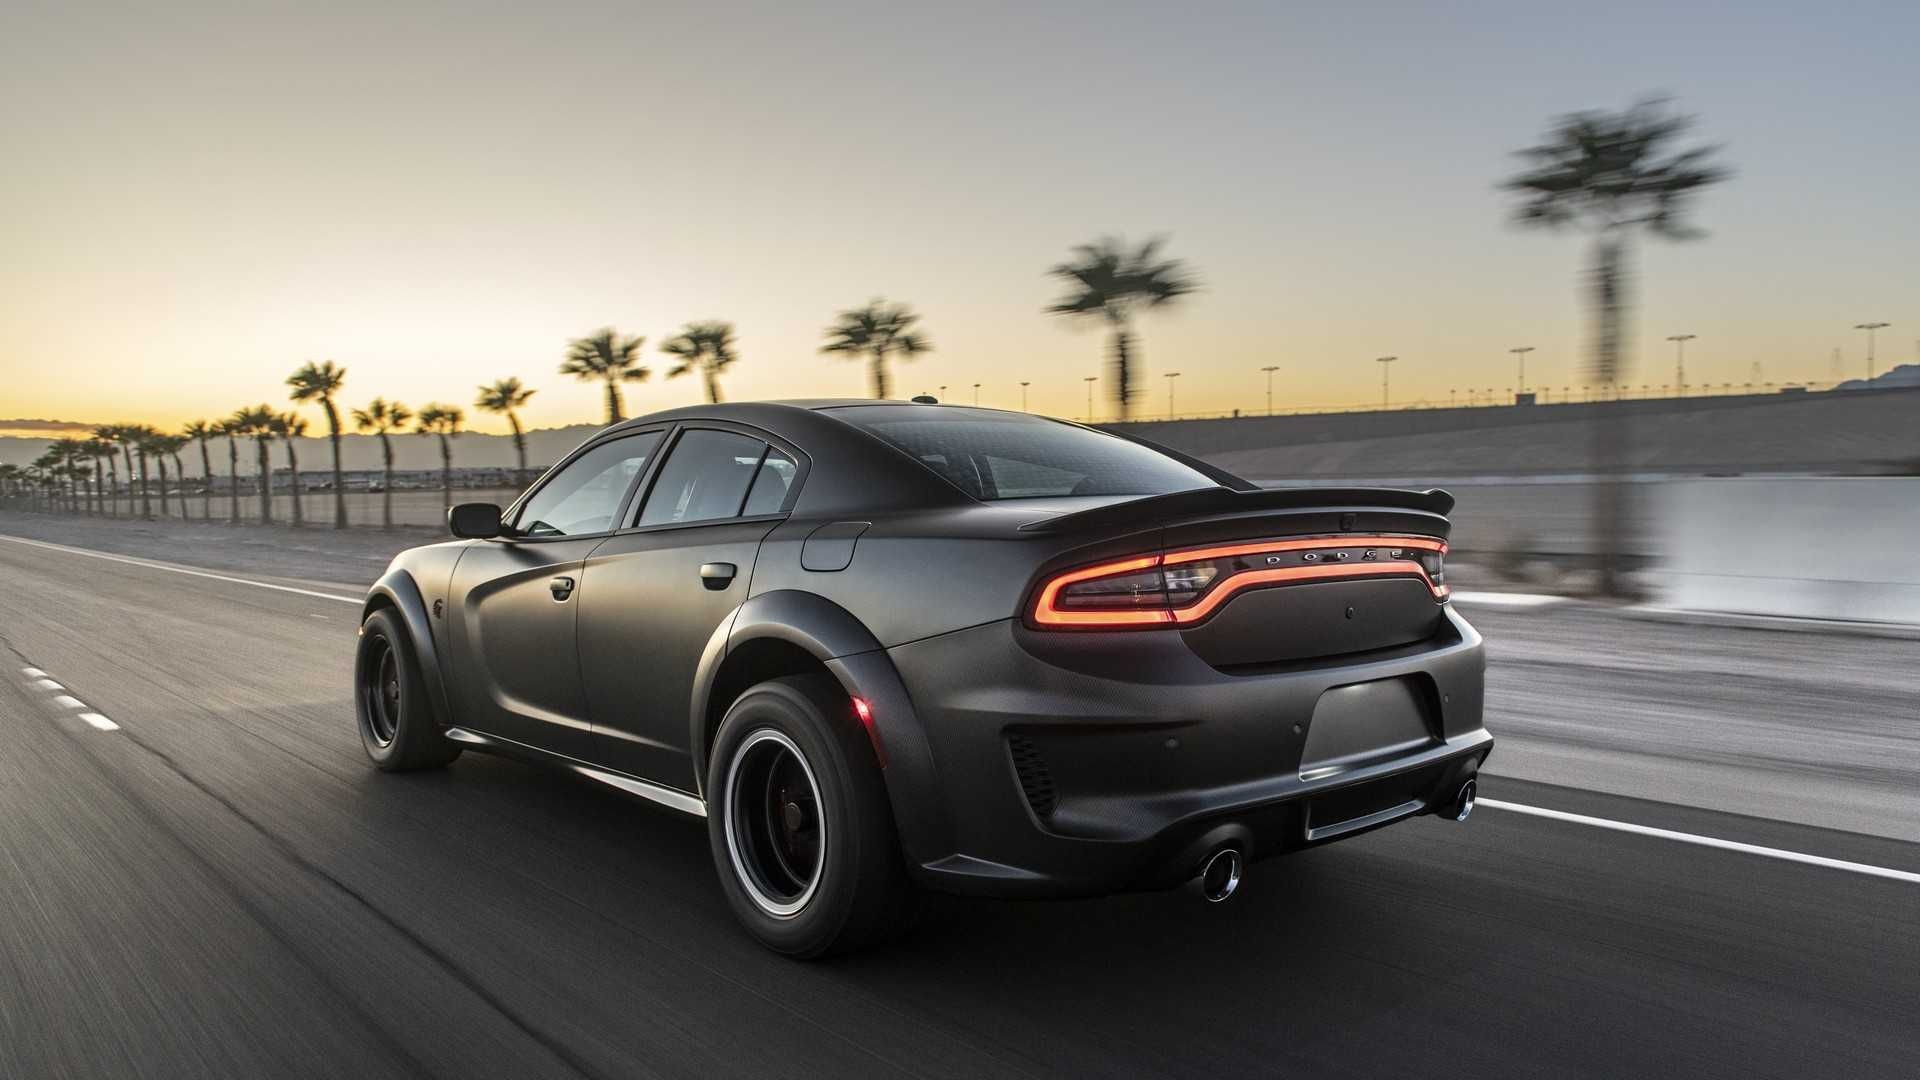 SpeedKore-Dodge-Charger-3